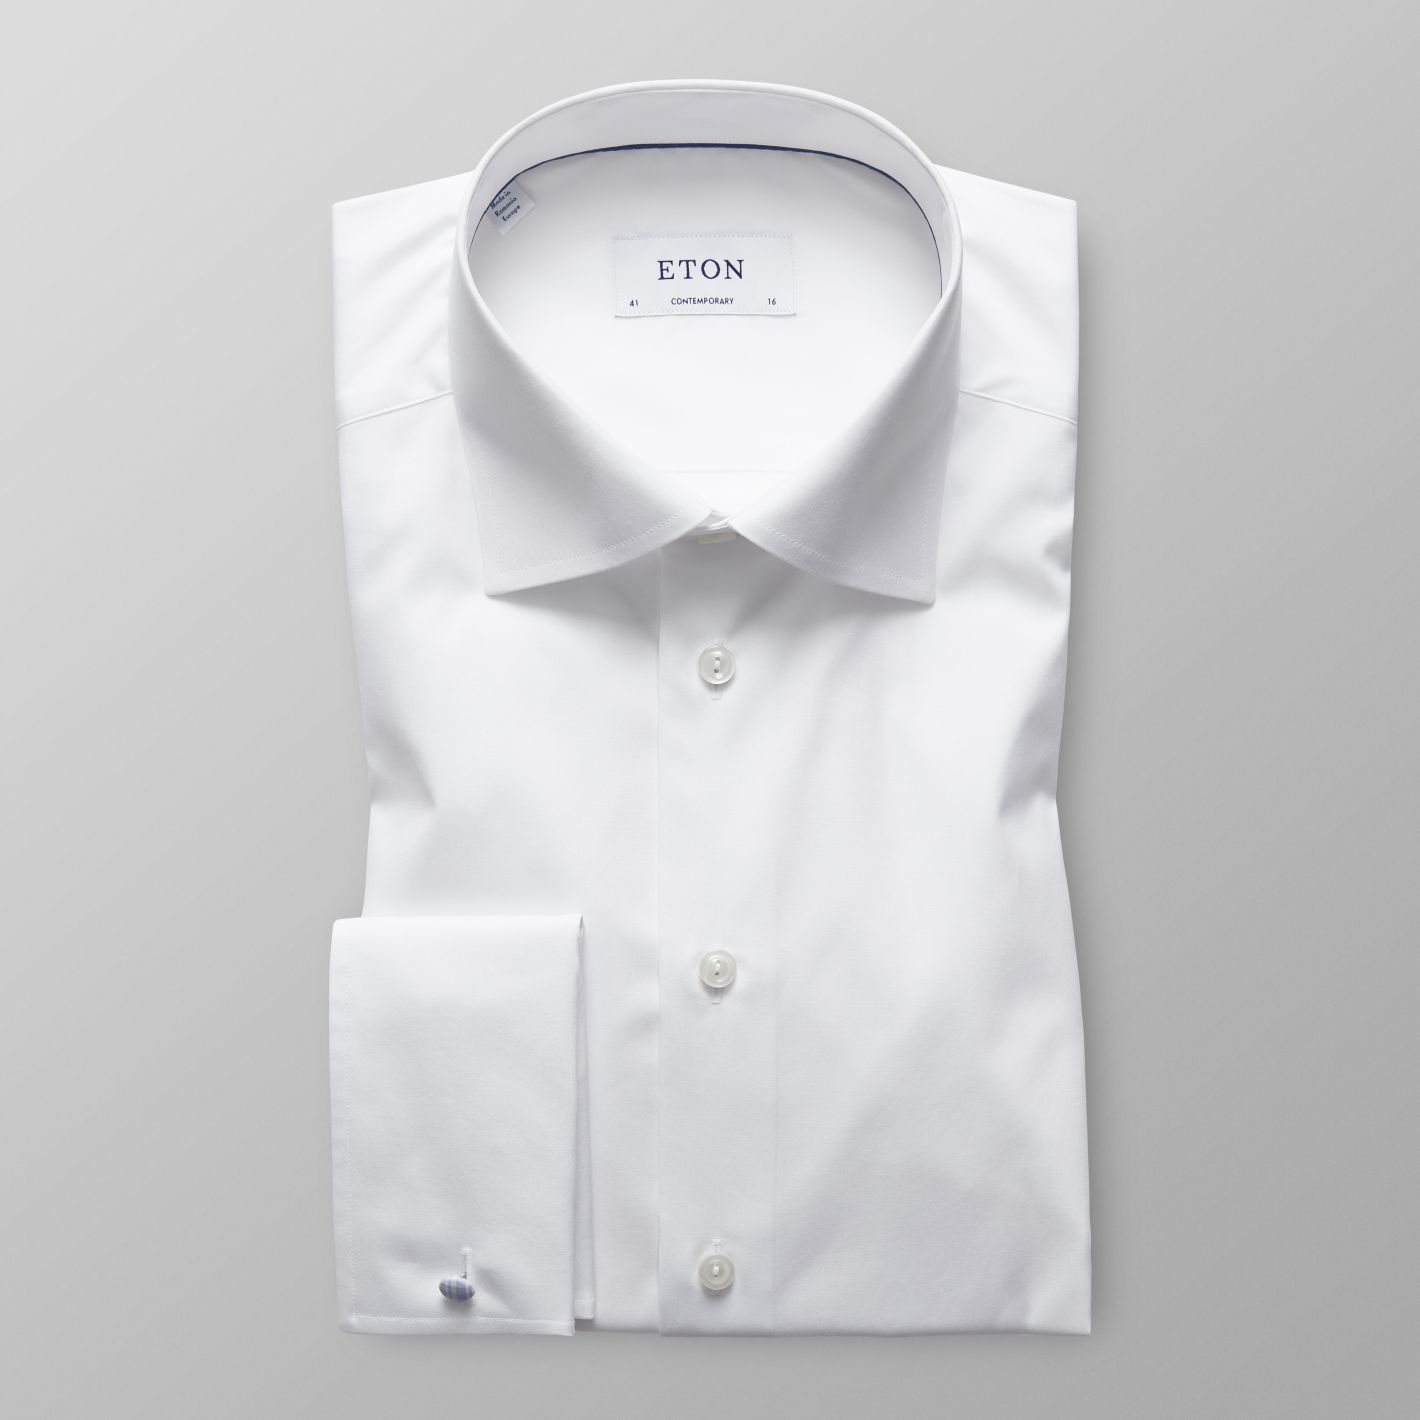 dd733cd8935 White Poplin Shirt French Cuffs - Contemporary fit